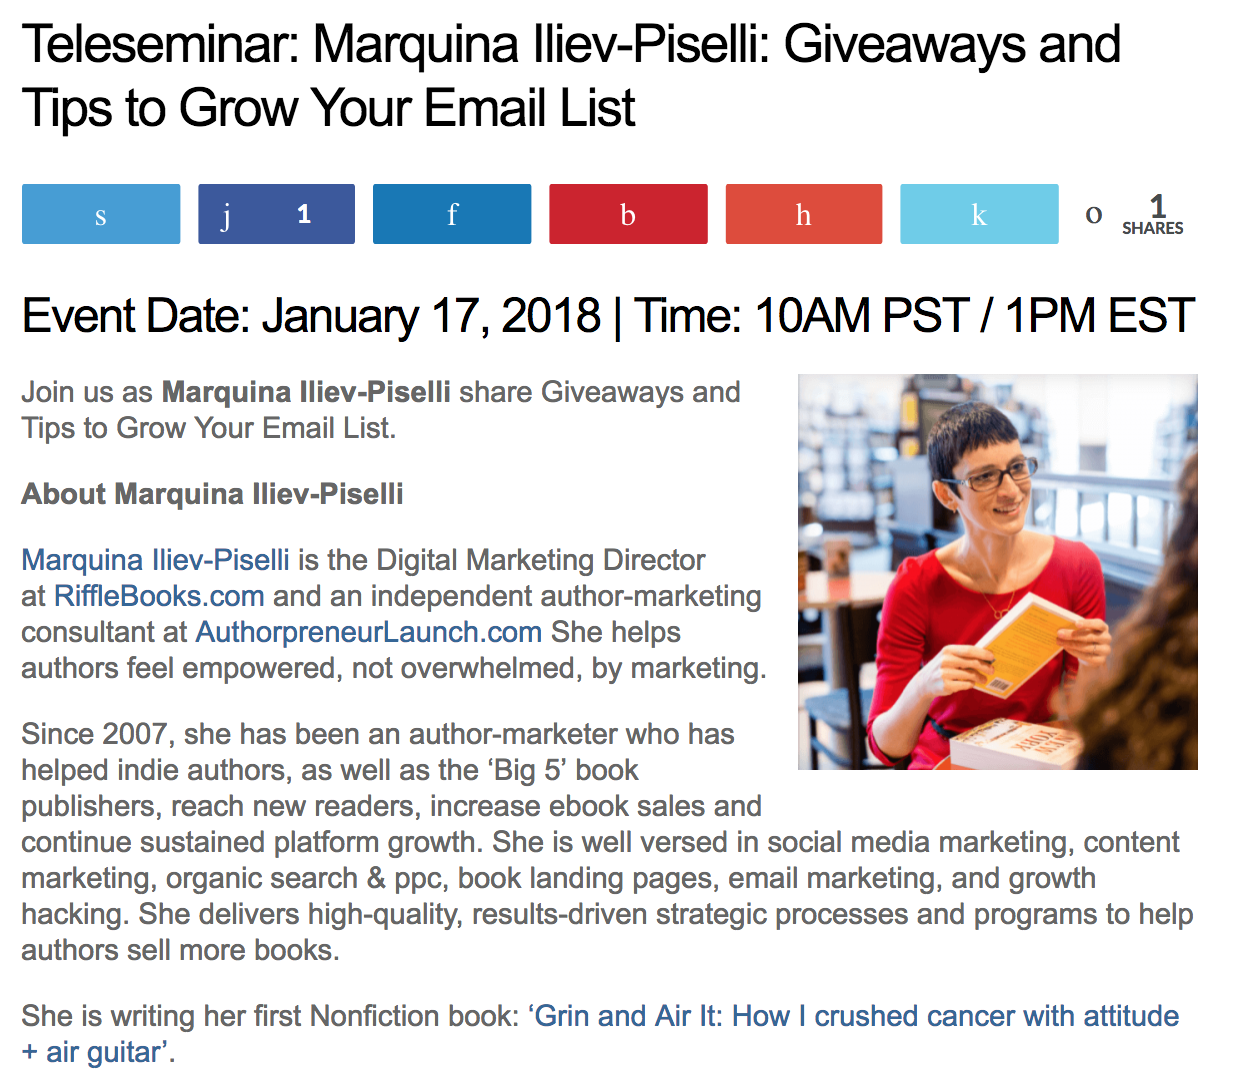 Teleseminar: Marquina Iliev-Piselli: Giveaways and Tips to Grow Your Email List